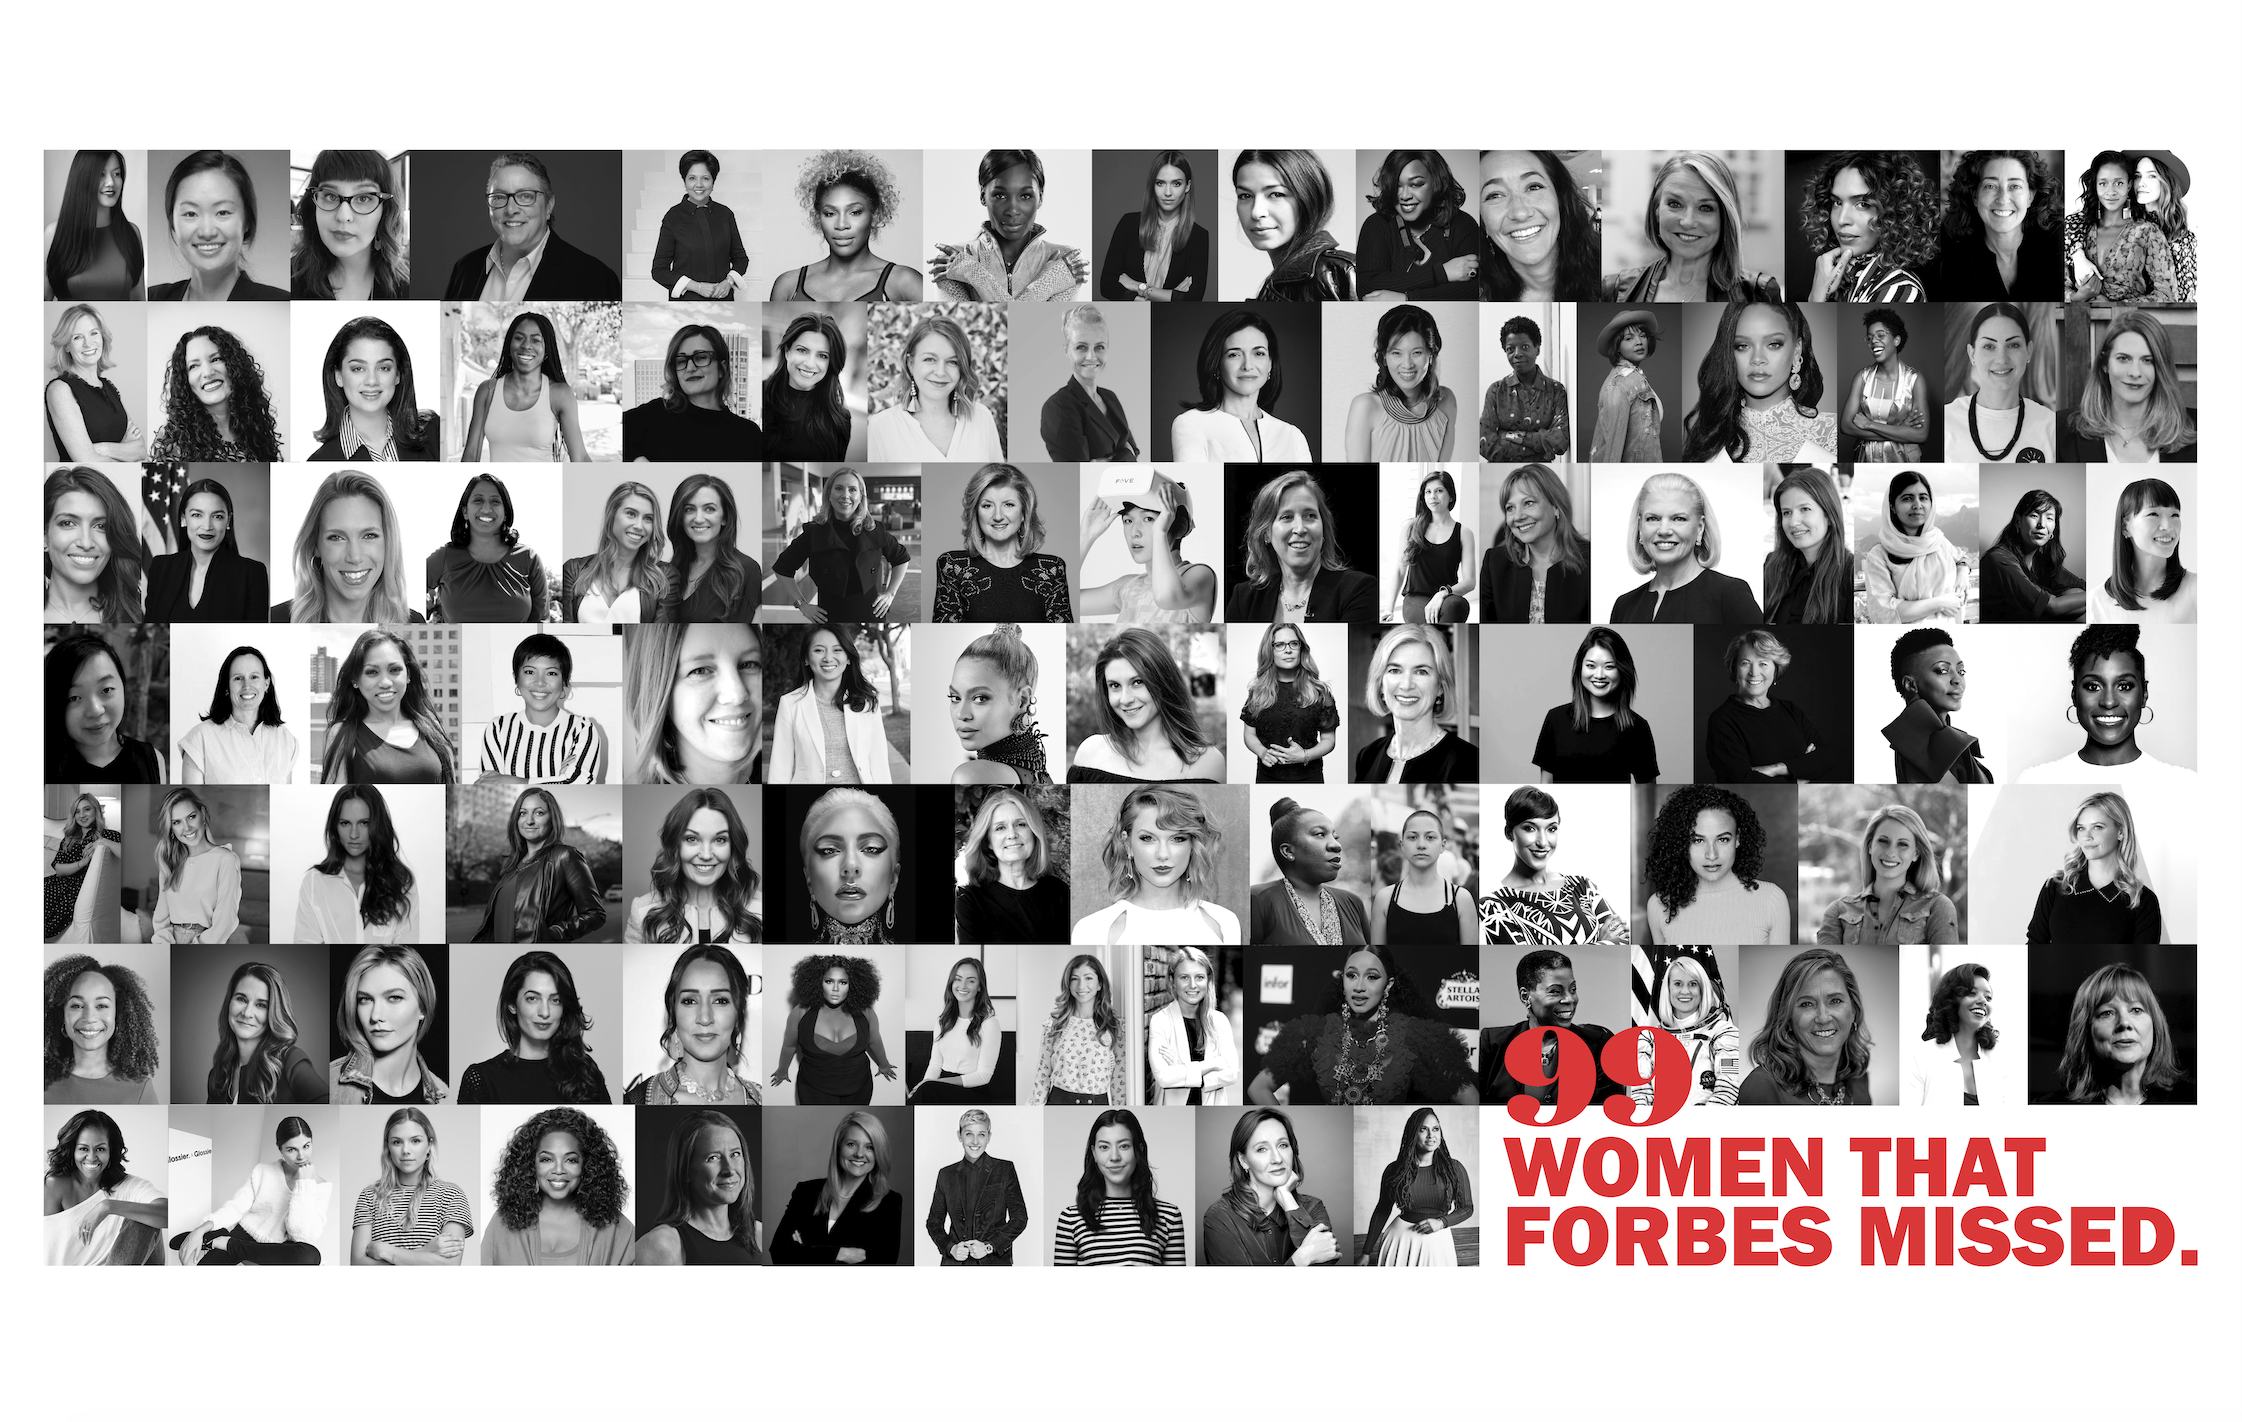 99 Women That Forbes Missed